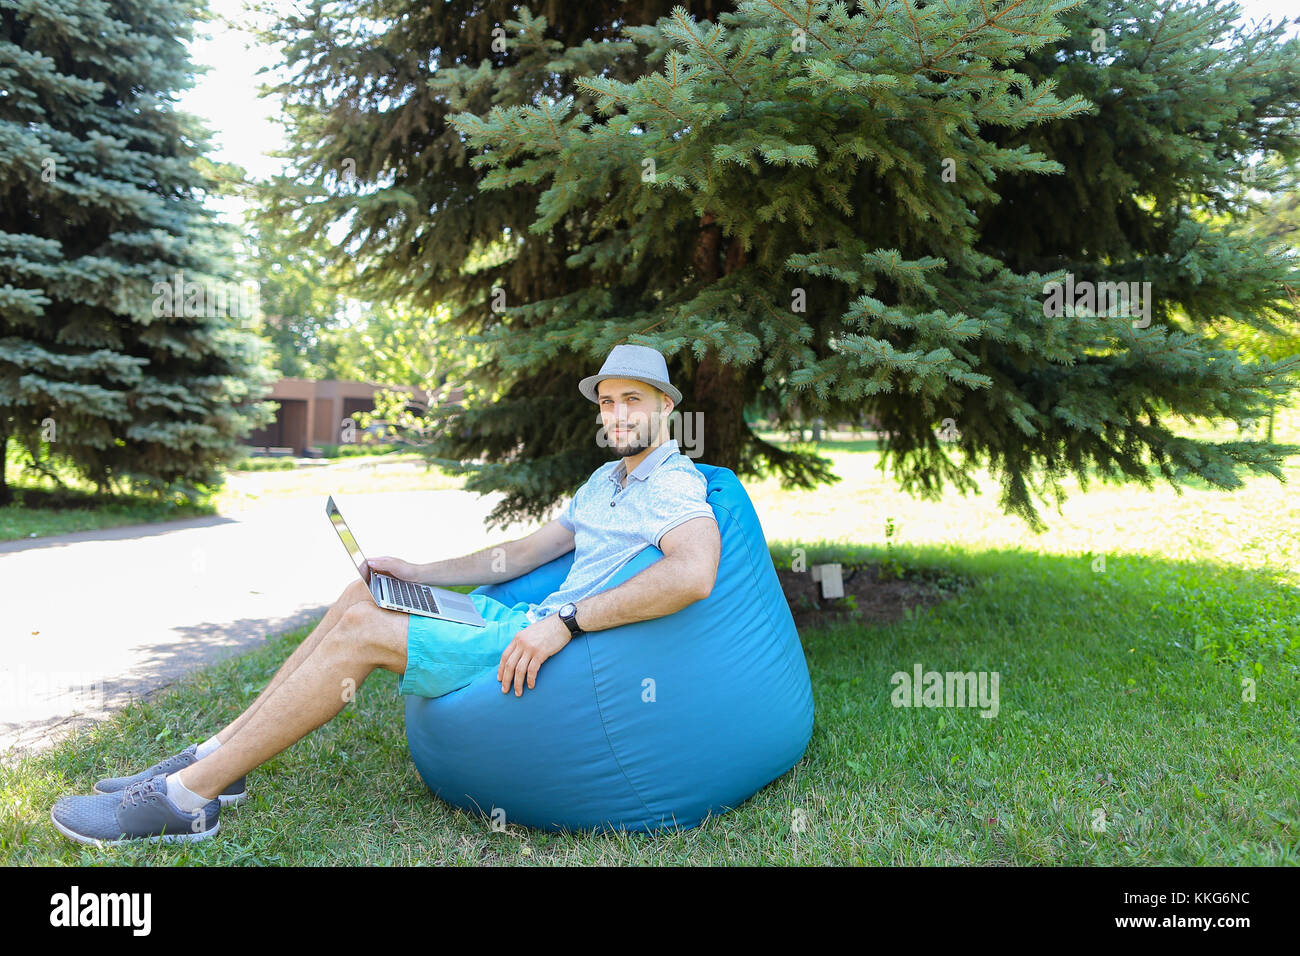 Jocund fun sitting in bag chair and supporting favorite sport sq Stock Photo